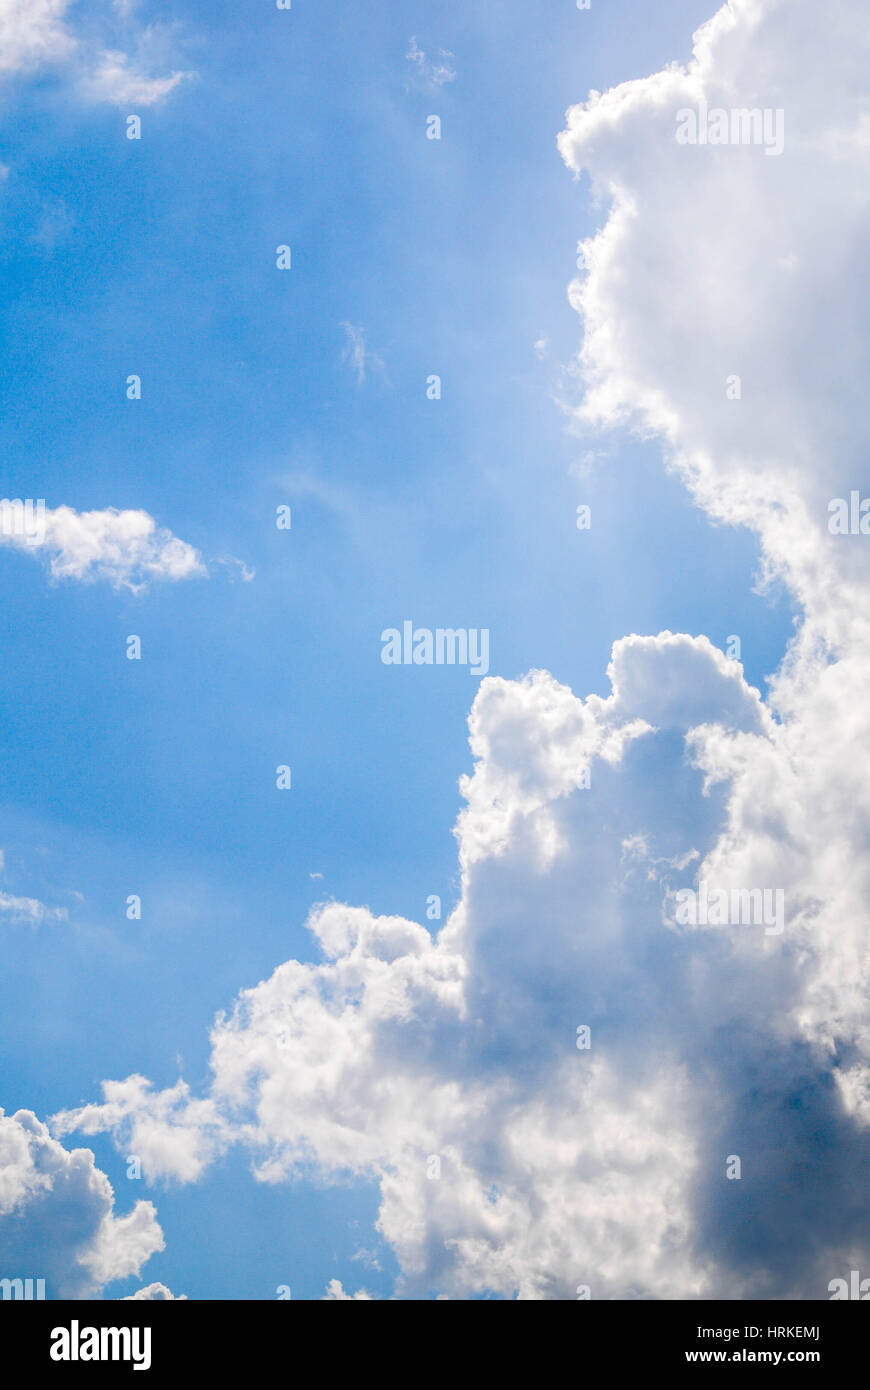 Fluffy white clouds against a bright blue sky on a summers day in England - Stock Image